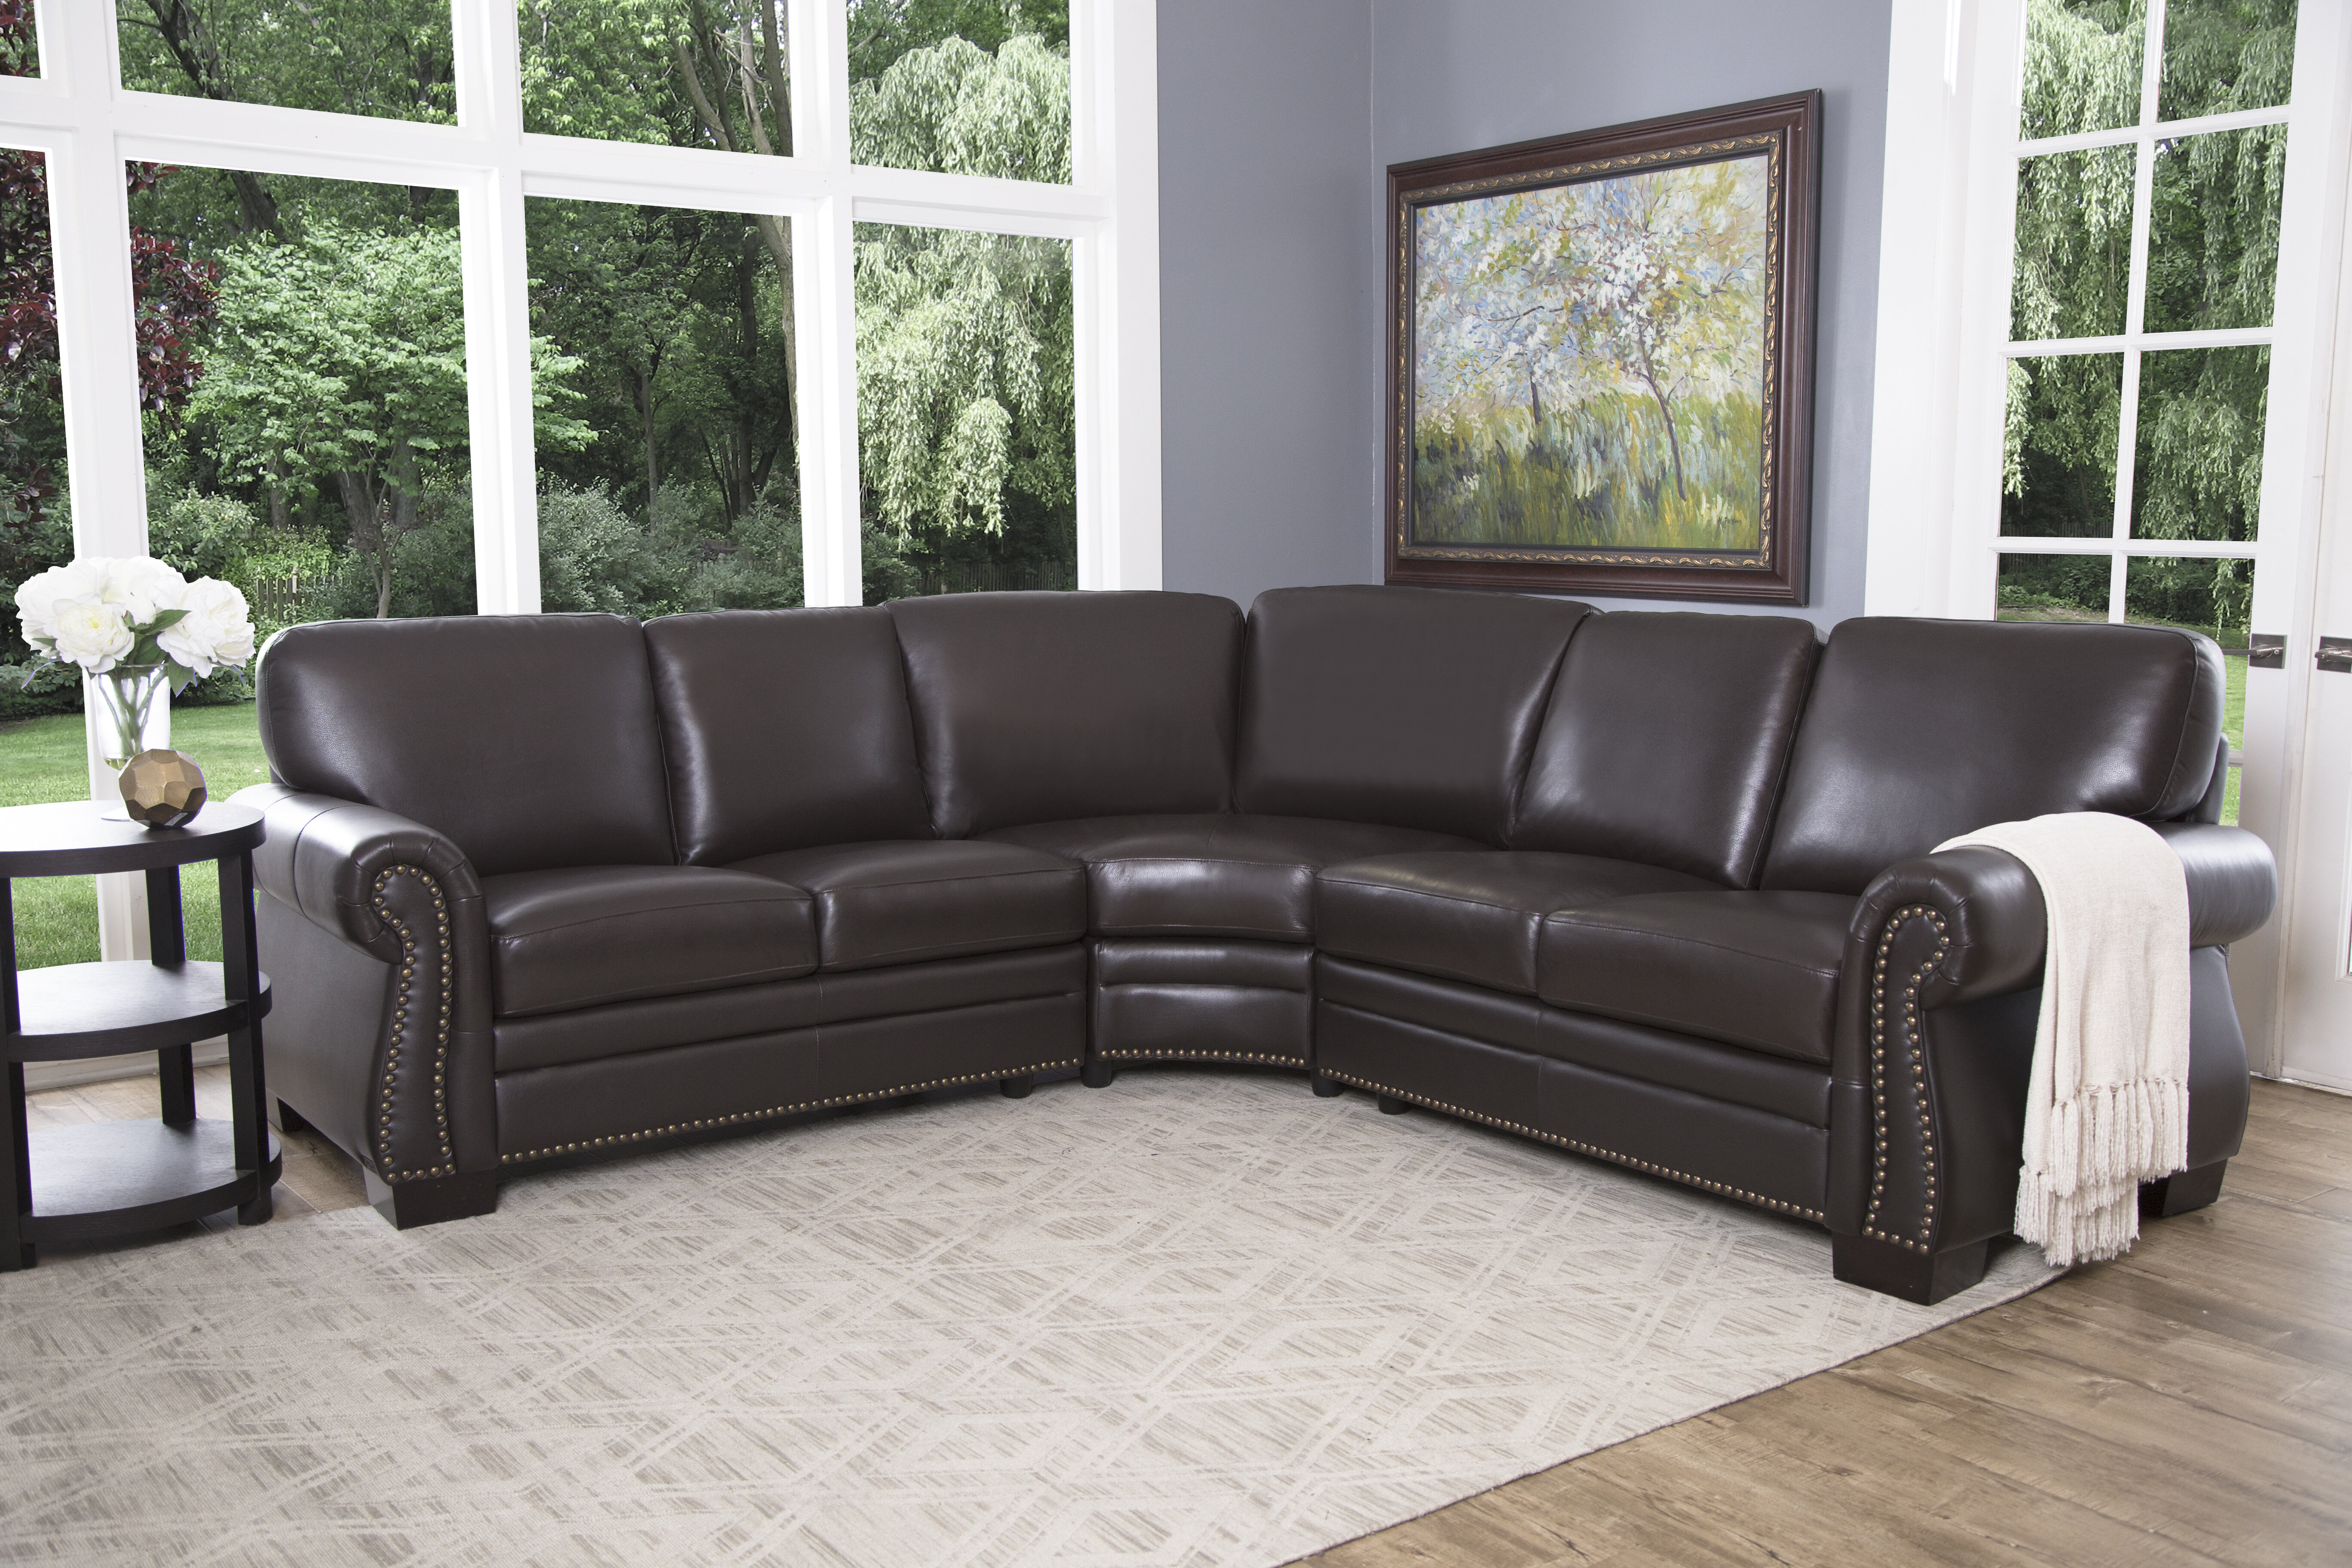 Miraculous Leather Sectionals On Sale Wayfair Home Interior And Landscaping Ologienasavecom